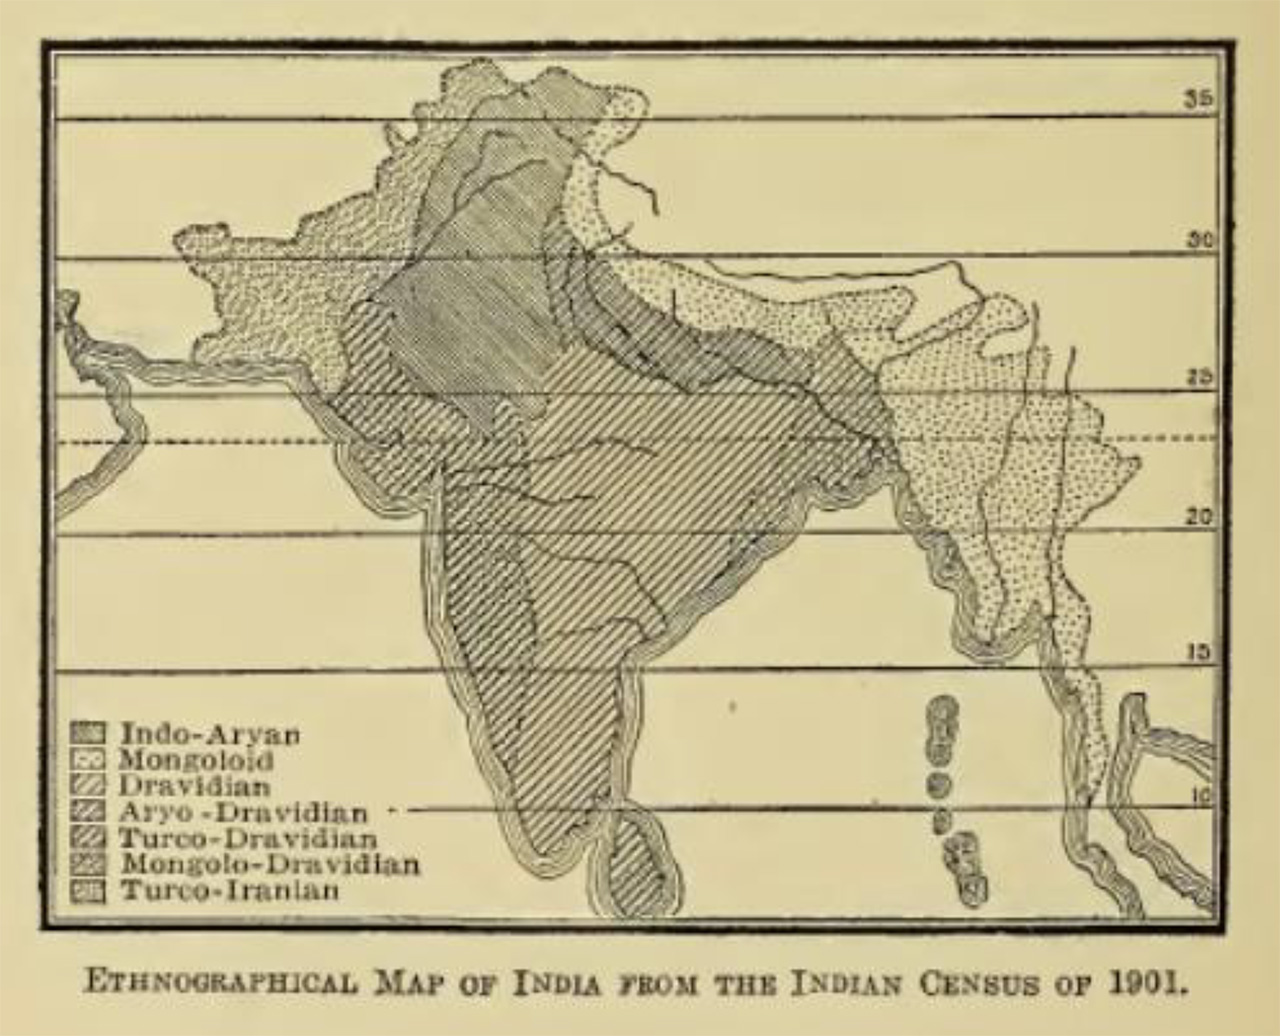 An ethnographic map of India from Ellen Semple's Influences of Geographic Environment (1911).